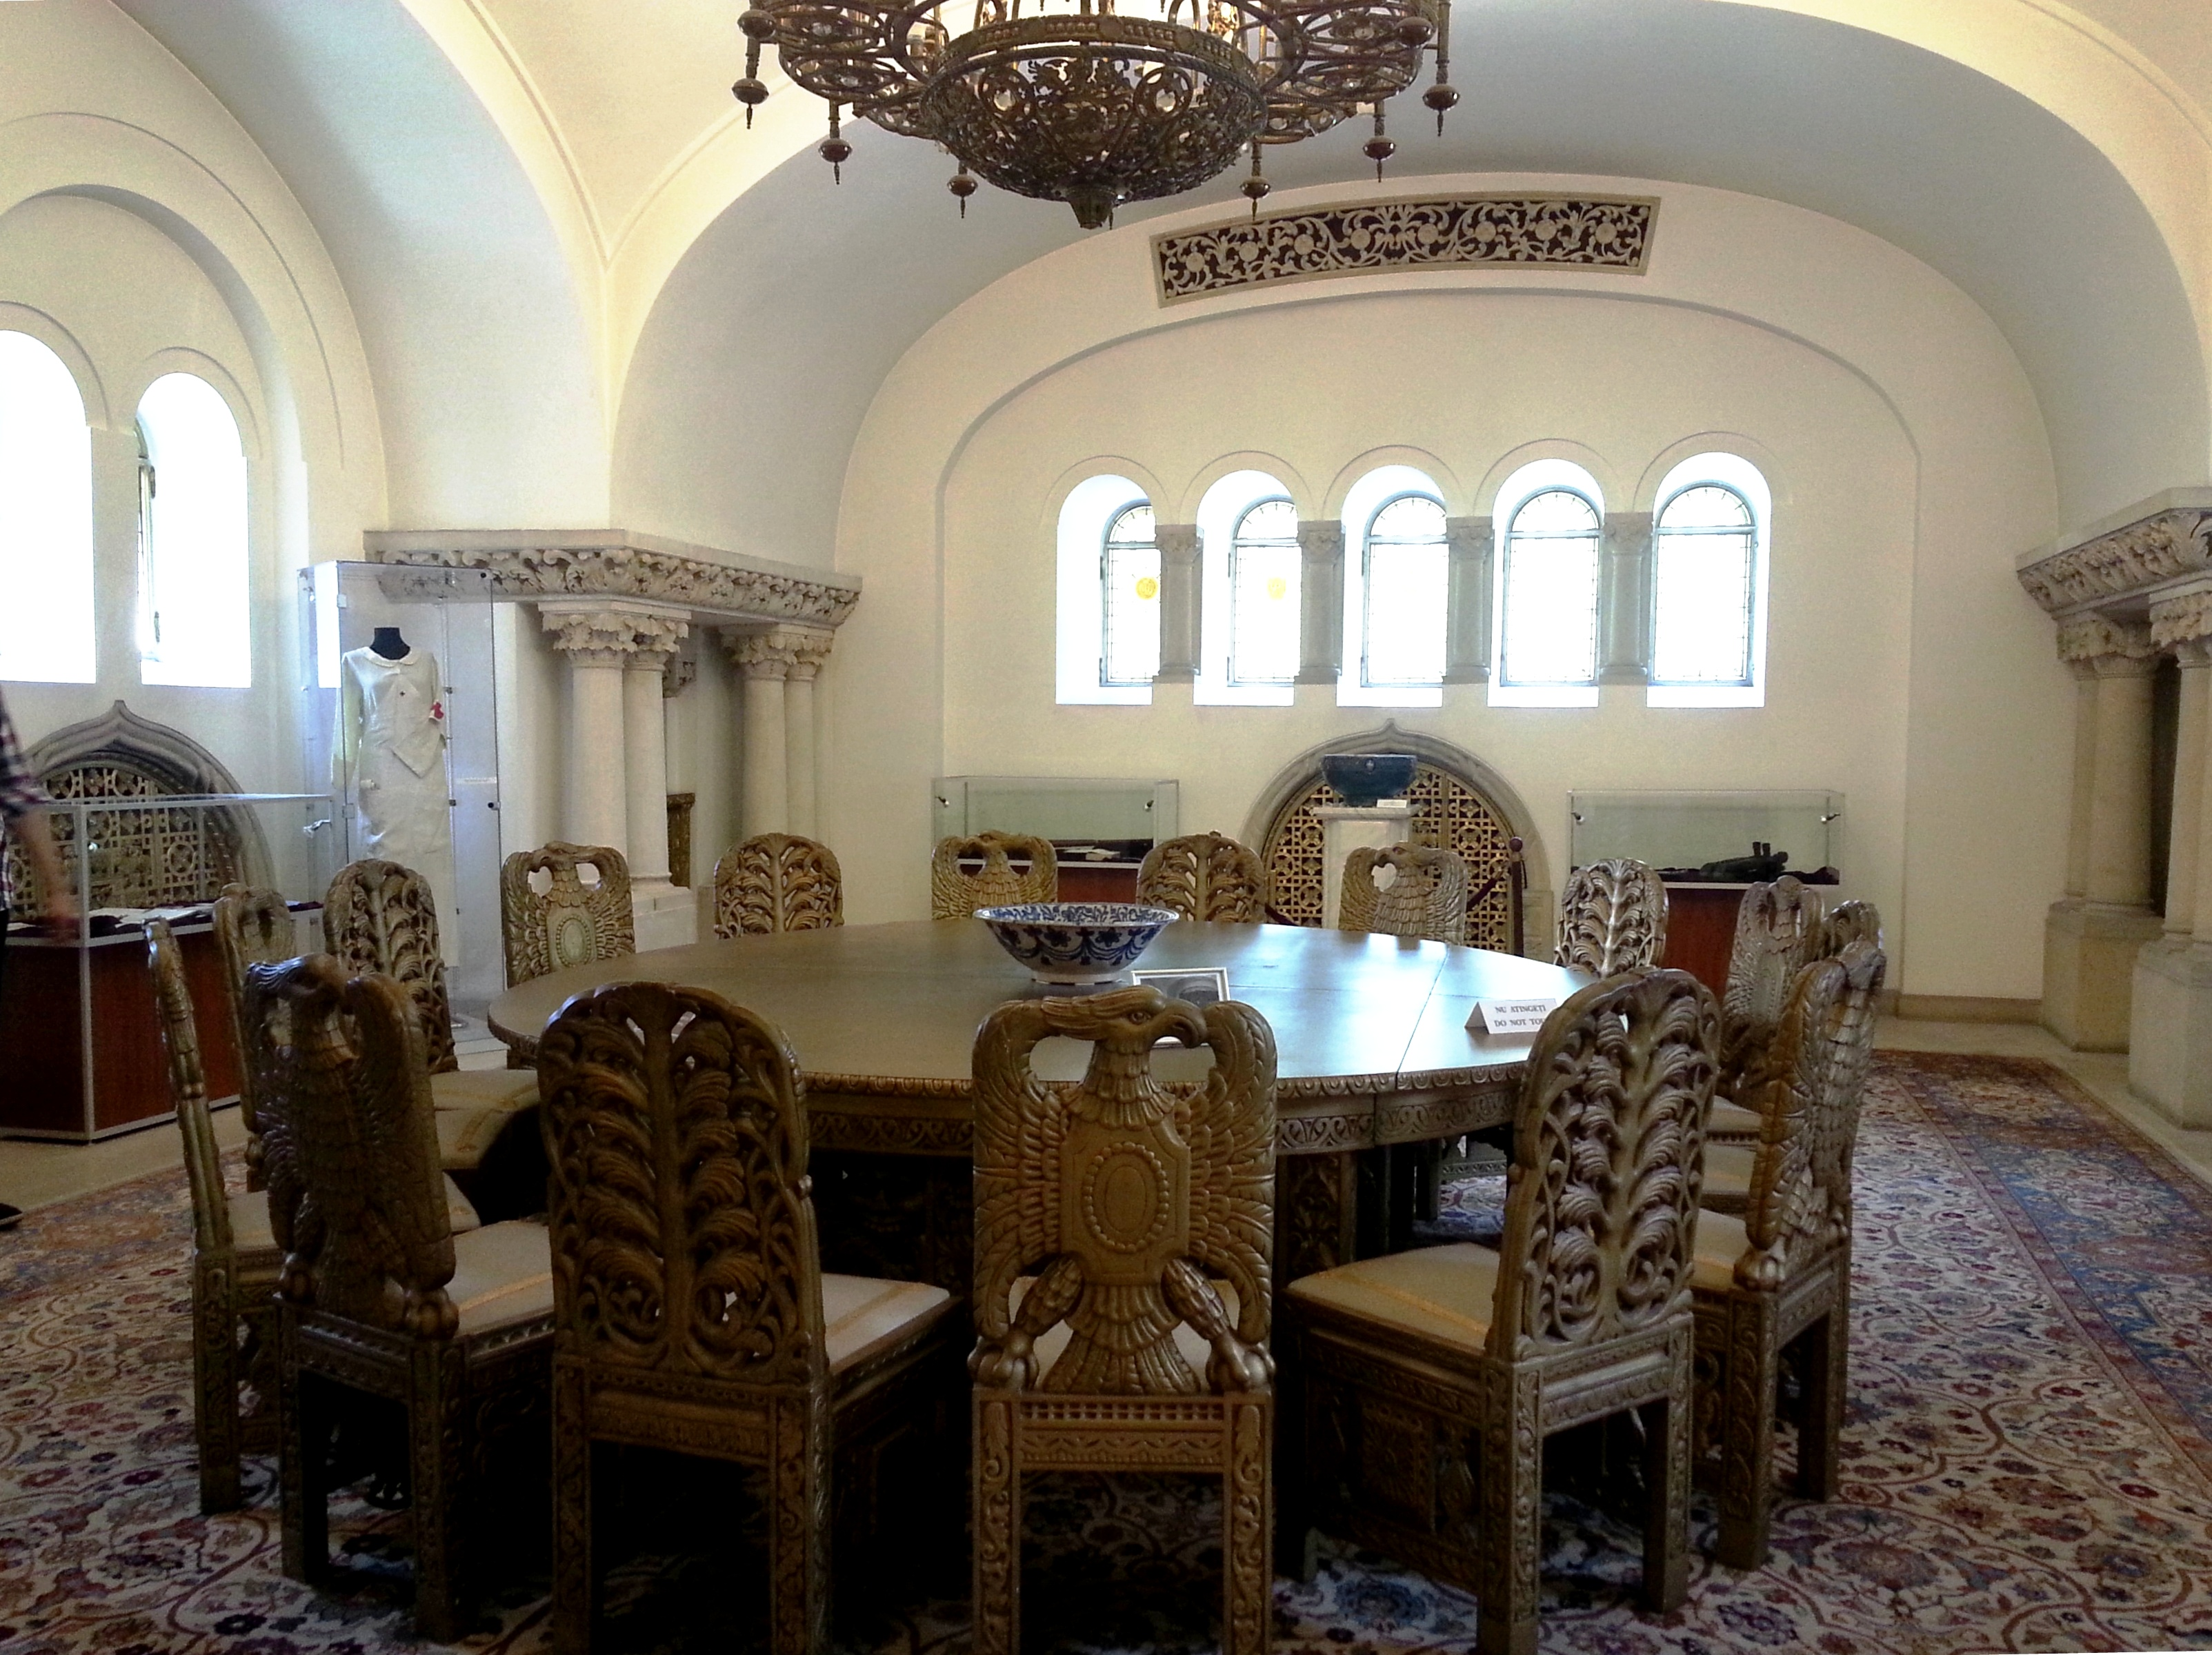 2 Day Bucharest Tour » Royal Dining Room At Cotroceni Palace, Bucharest